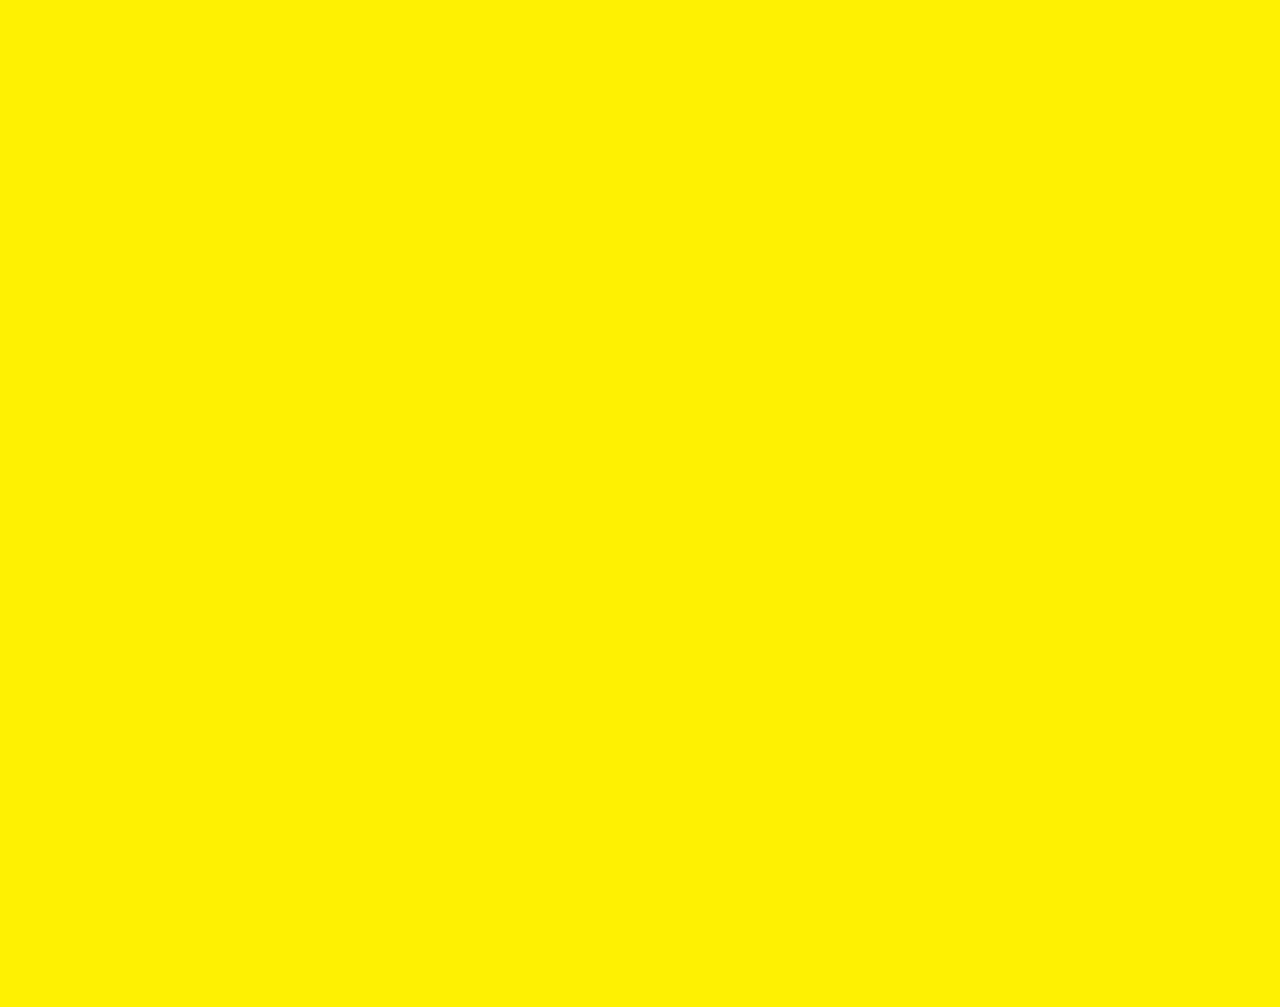 Neon Yellow Backgrounds - Wallpaper Cave